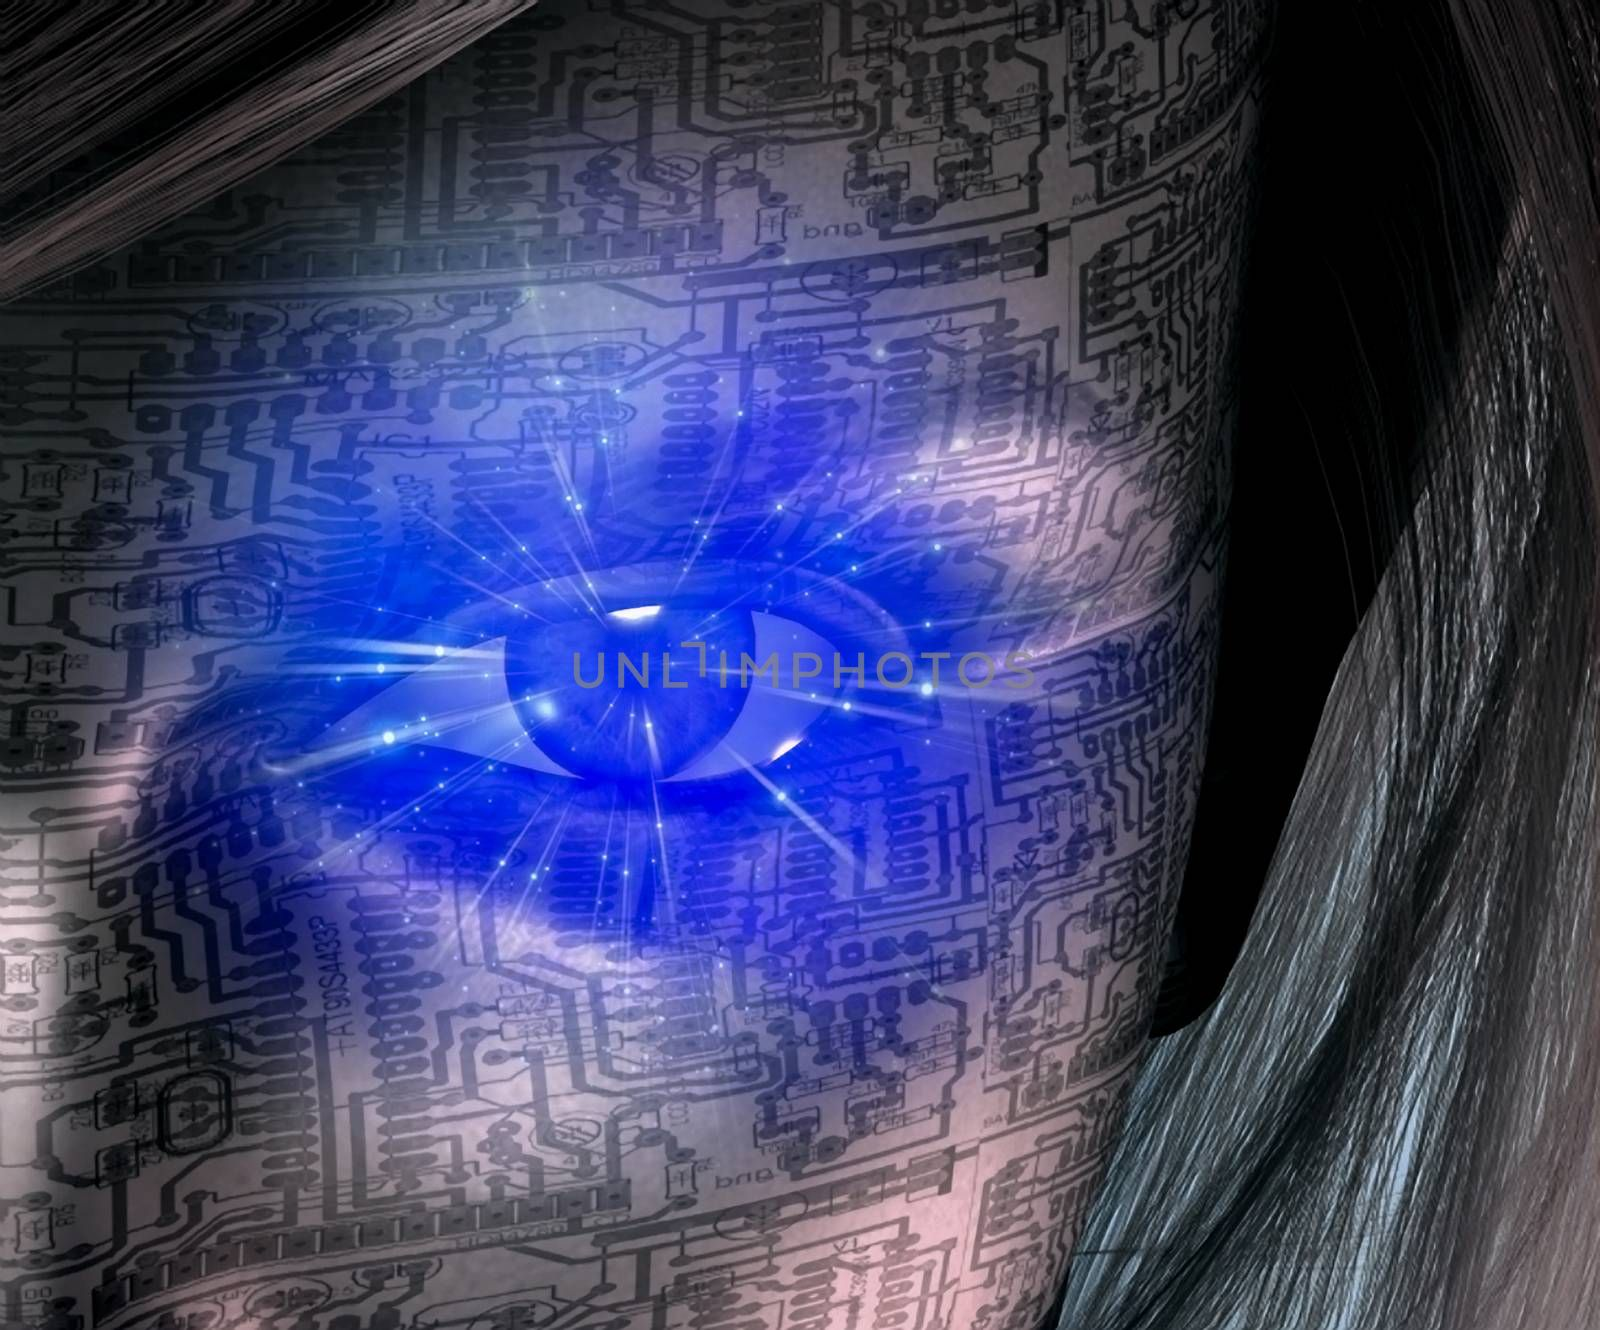 Technology Human. Woman face with electric circuit pattern